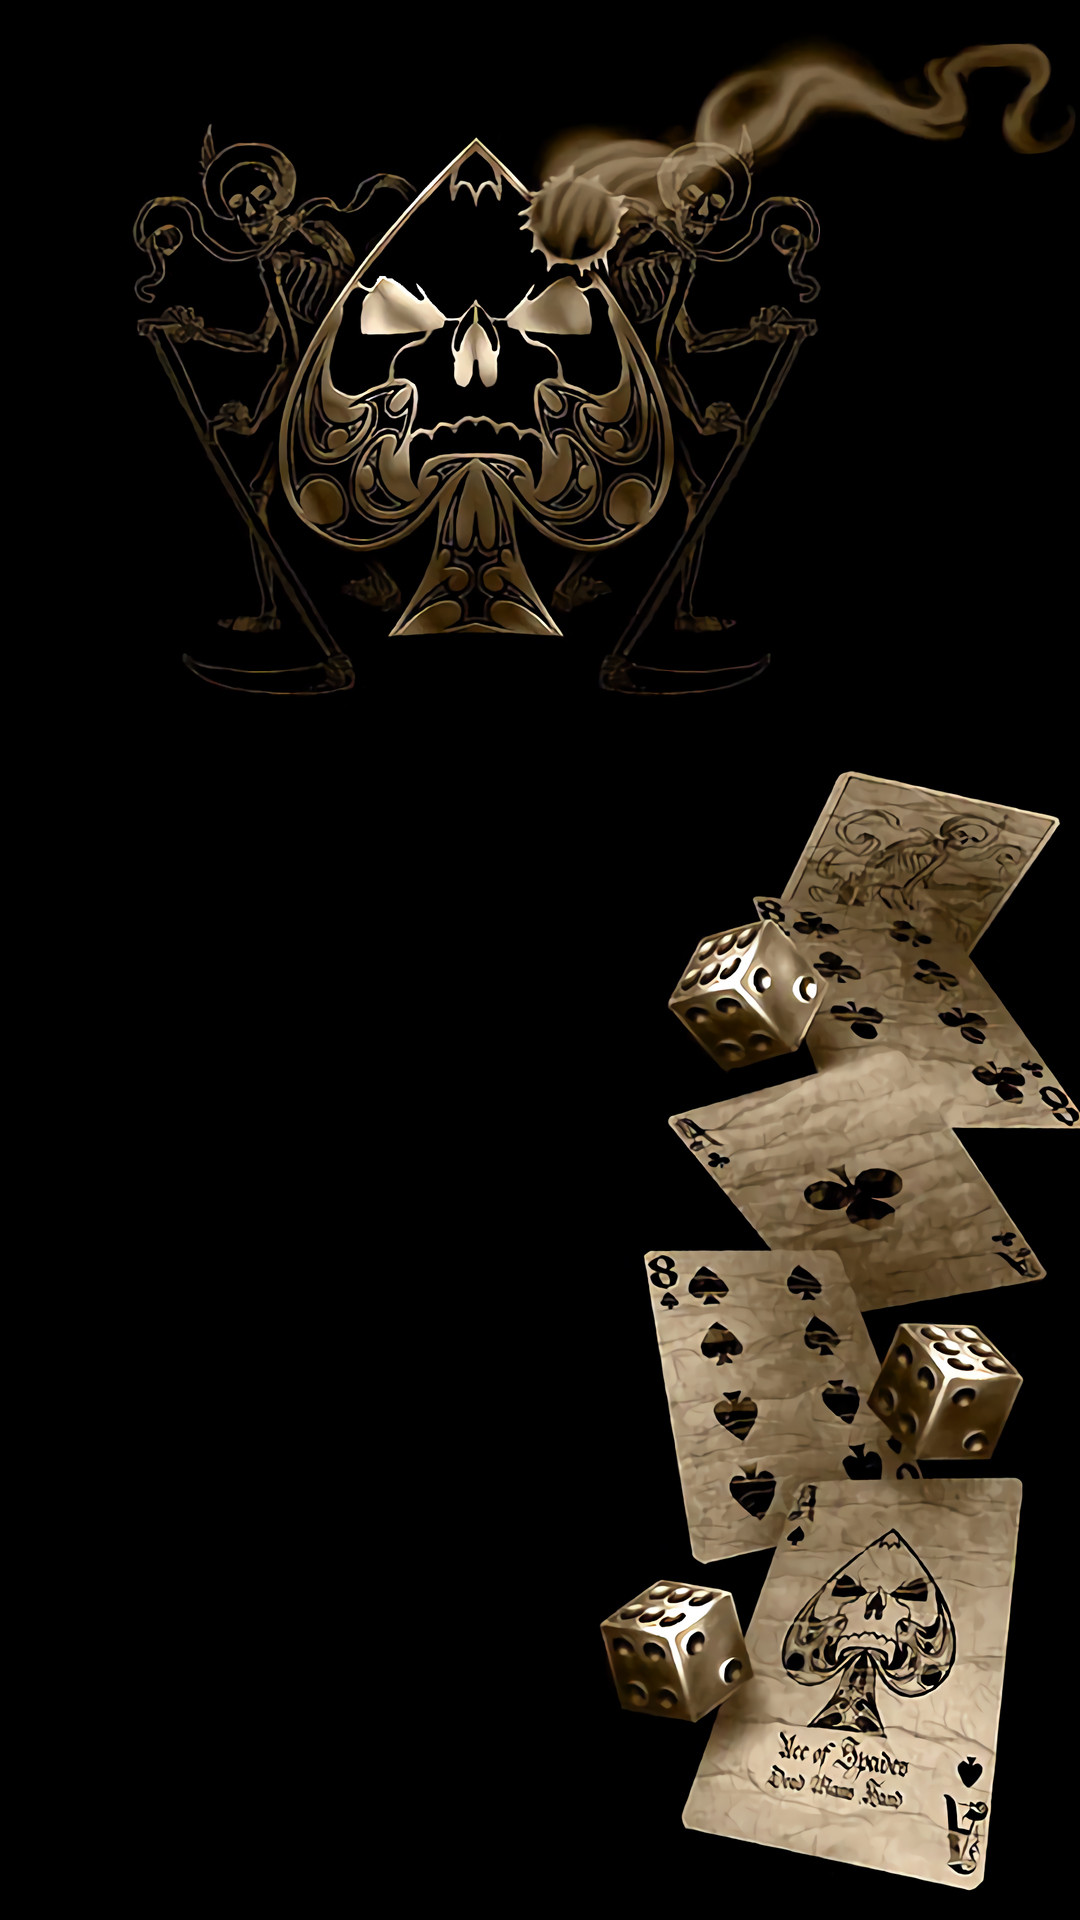 Ace Of Pentacles Images On Pinterest: Ace Of Spades Wallpapers (64+ Images